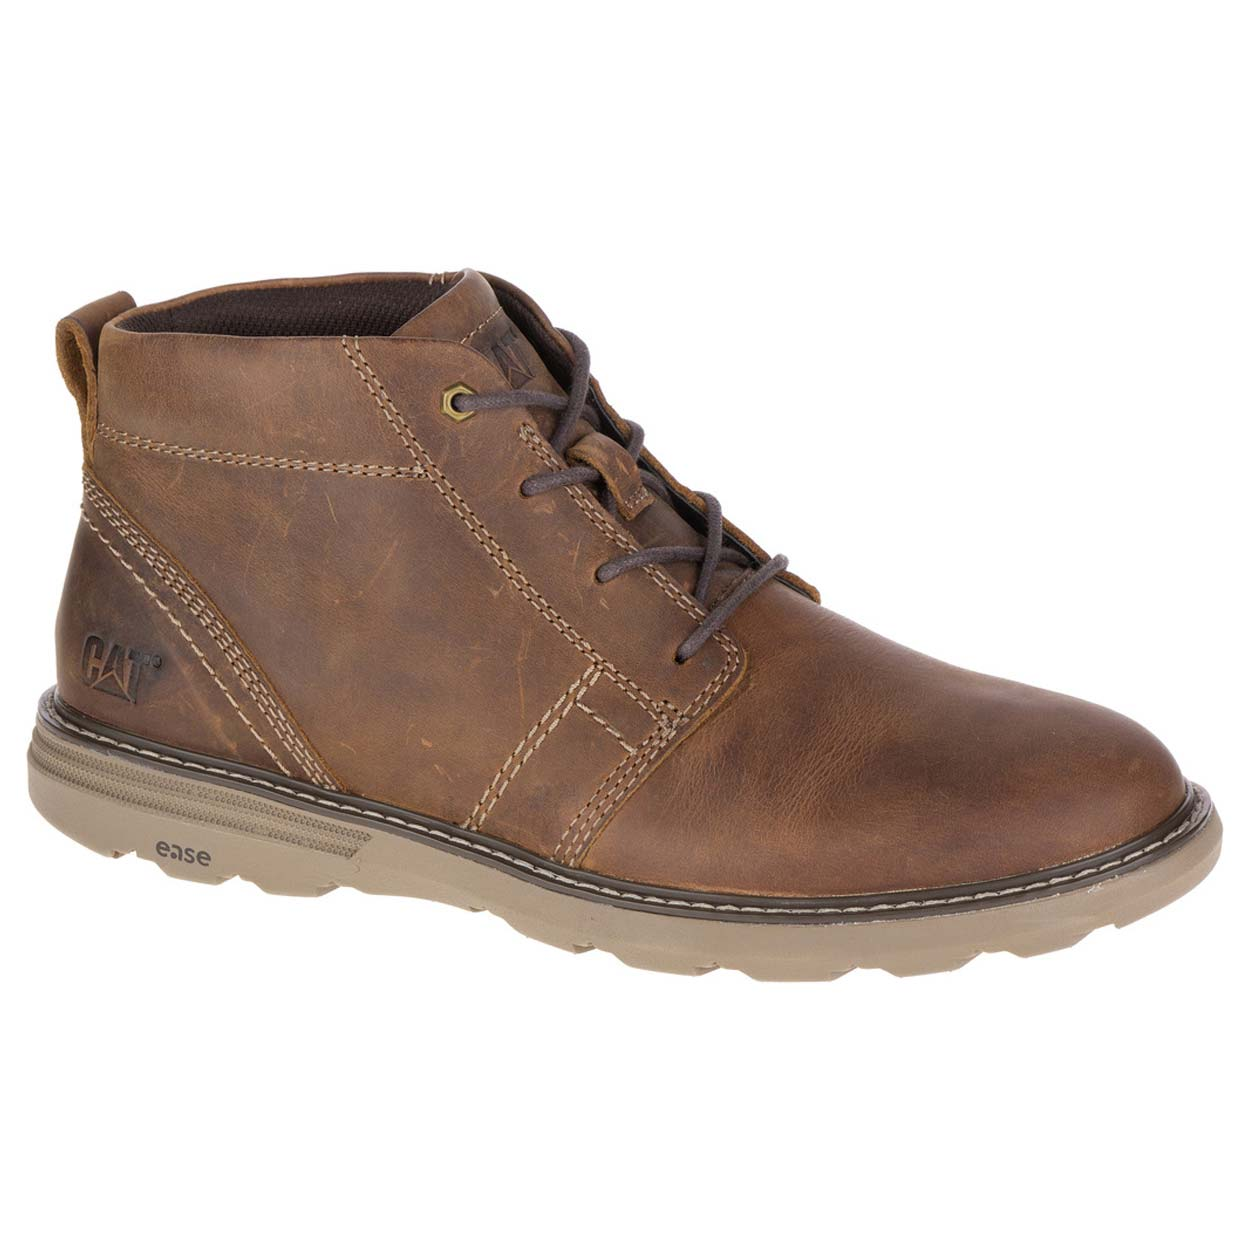 Caterpillar Shoes Online South Africa